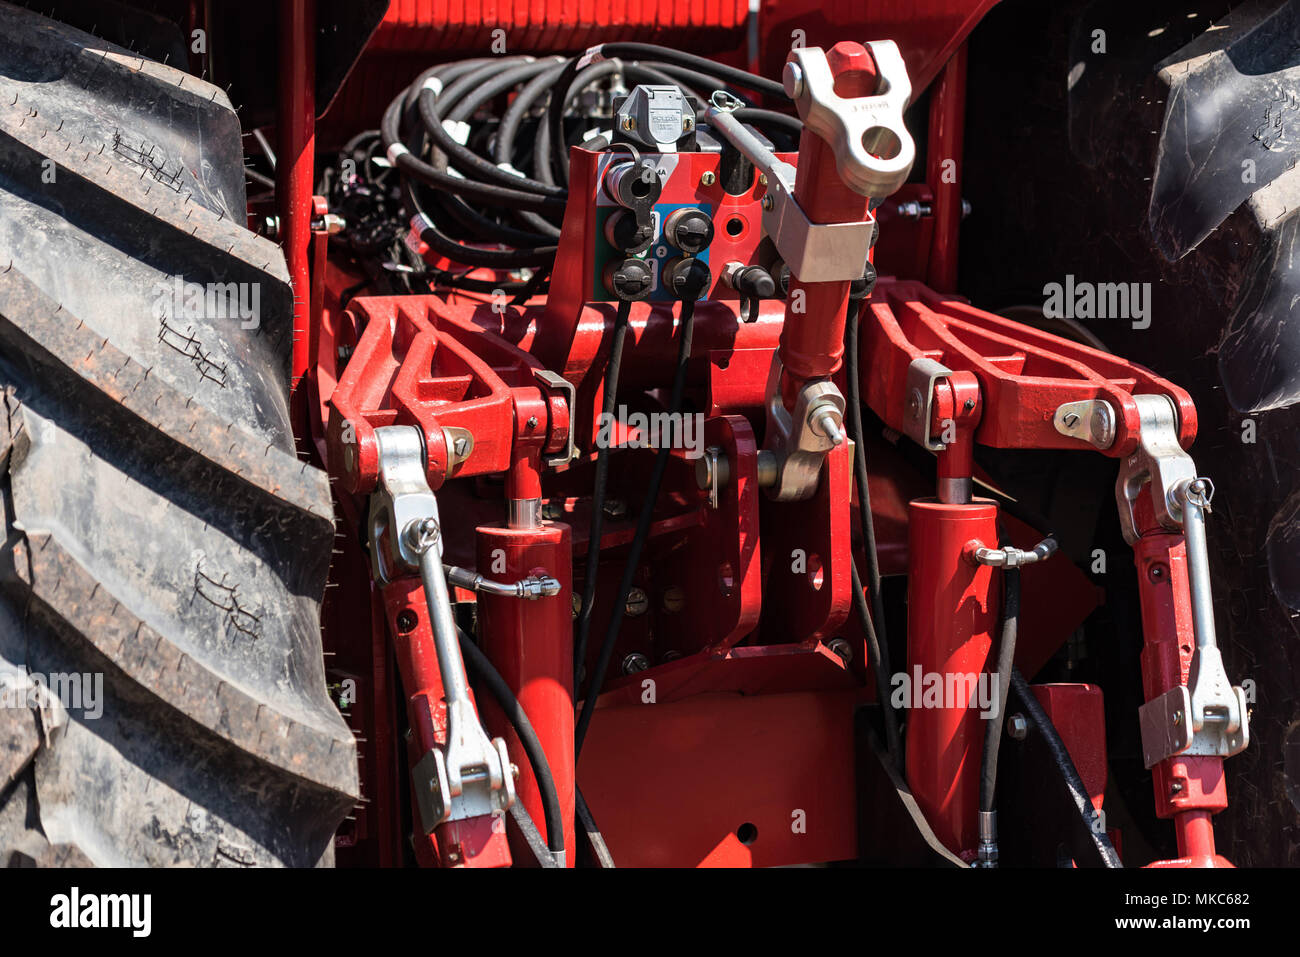 Attachment unit on modern tractor - Stock Image